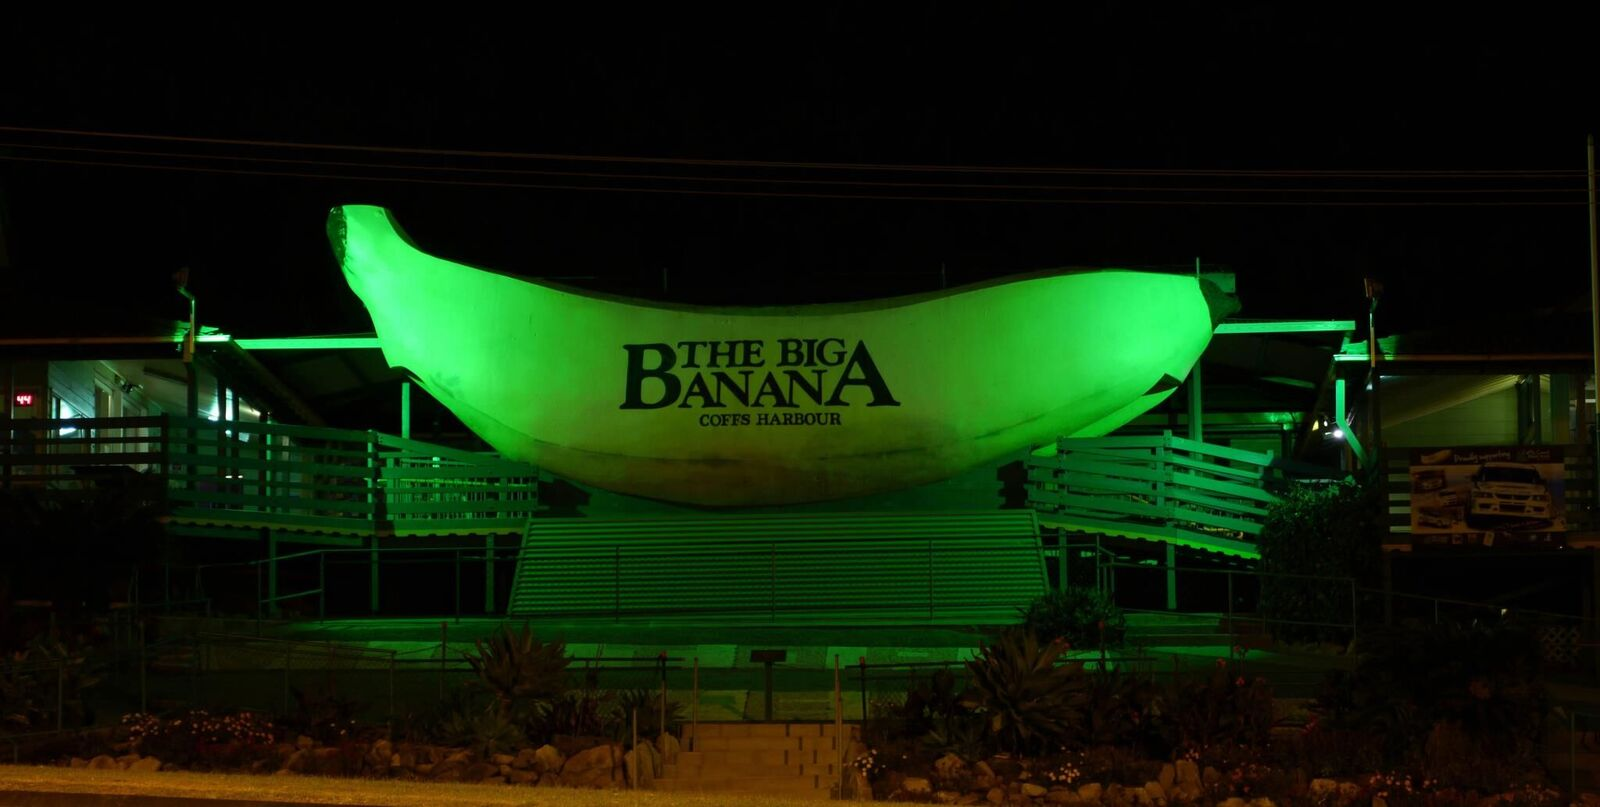 The Big Banana in Coffs Harbour, NSW is just one of the greenings in 2018.  See the  Tourism Ireland website  for the full list of Australian and global greenings.